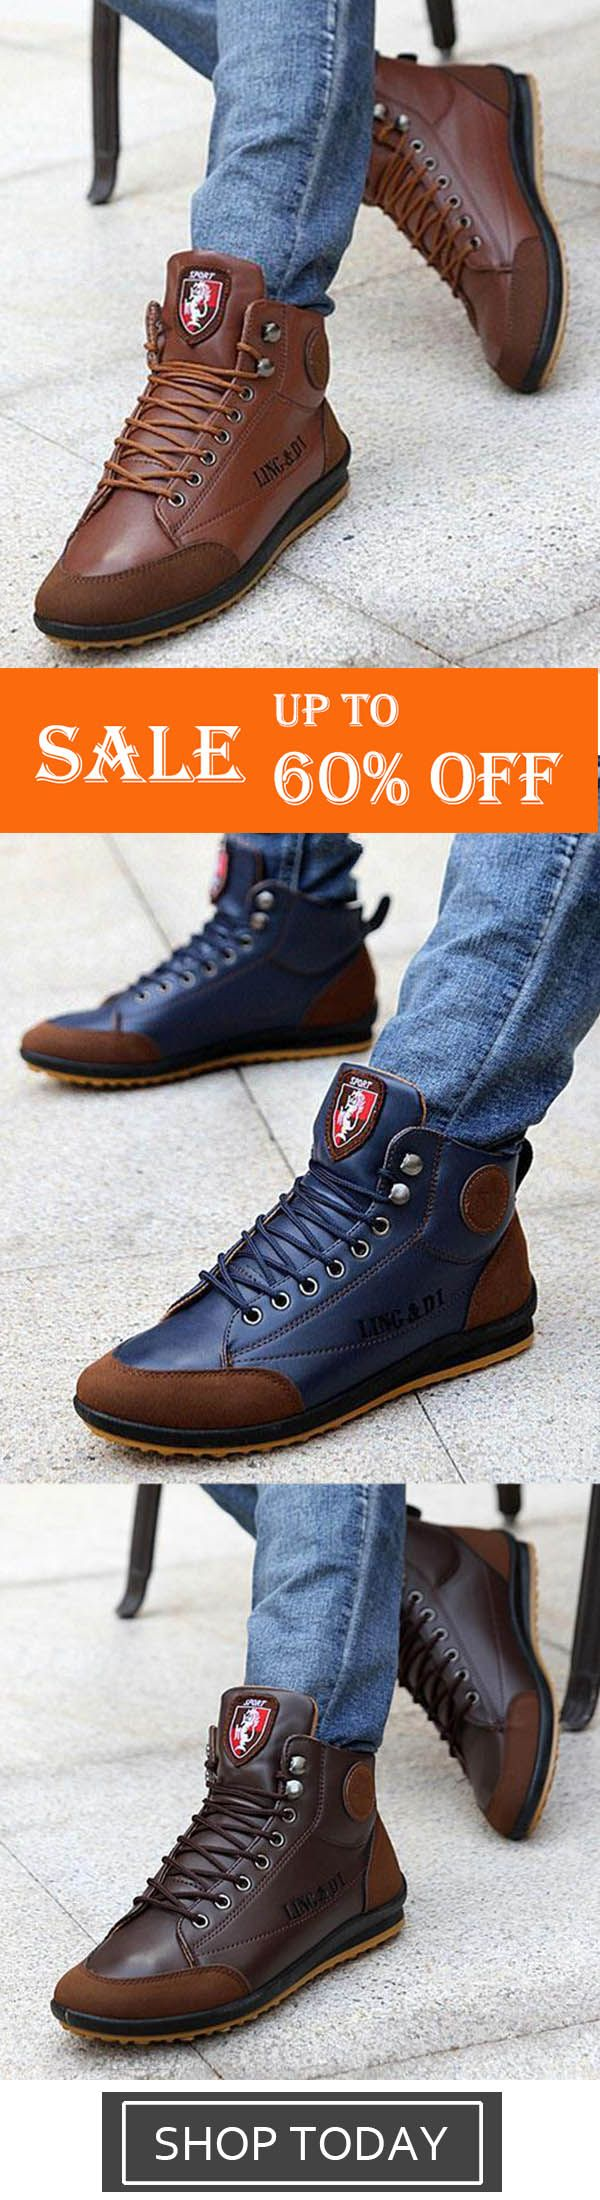 Comfy Casual High Top Sneakers Ankle Boots Lace Up Shoes #shoeboots